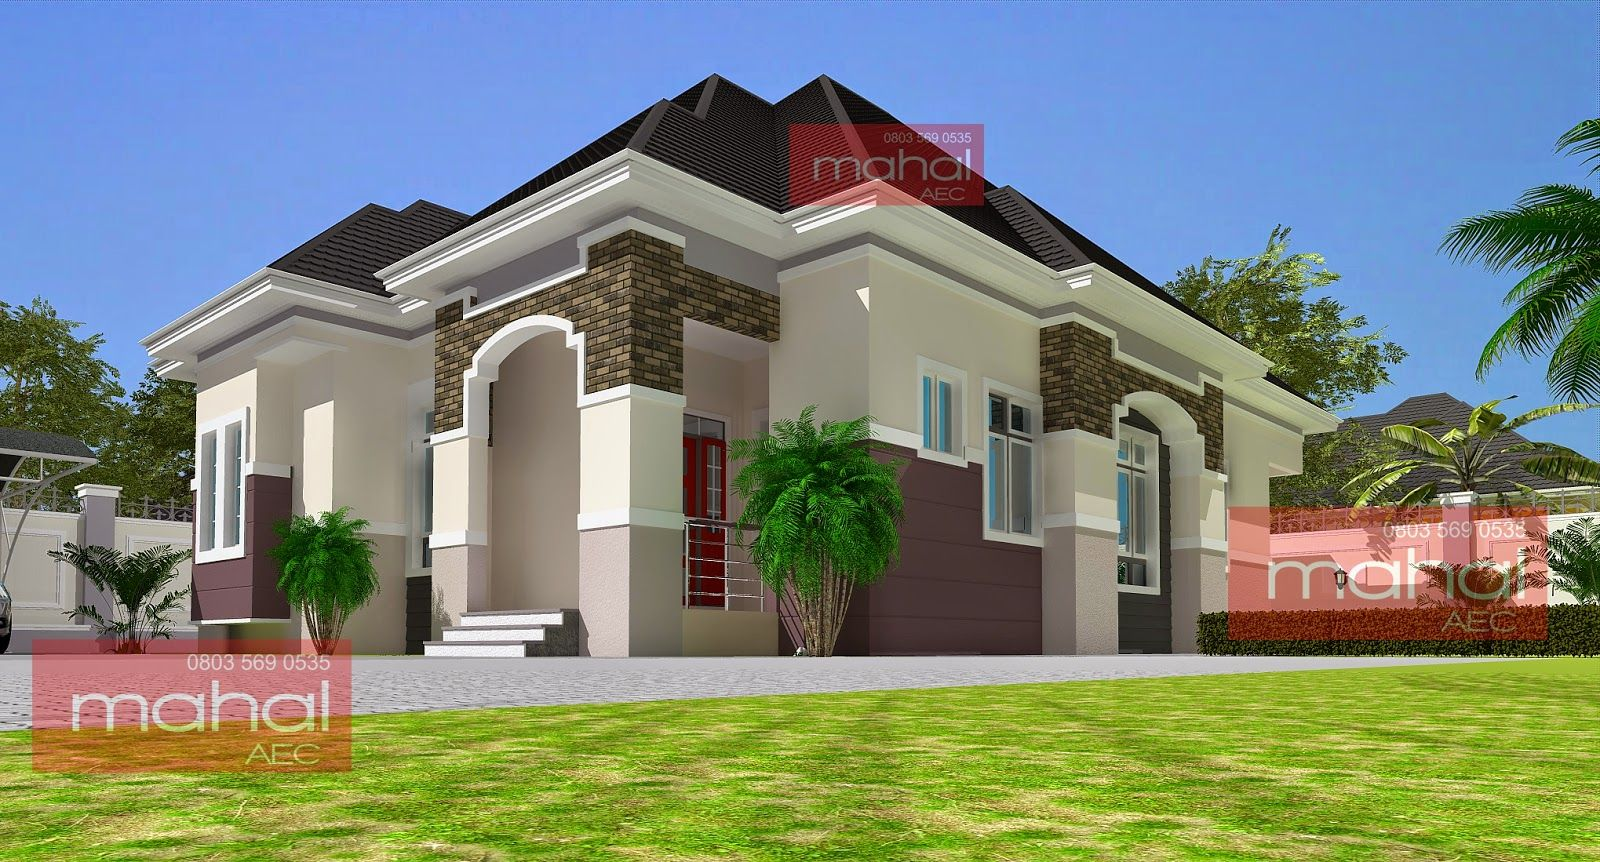 Contemporary Nigerian Residential Architecture 3 Bedroom Bungalow Amadi Flats Duplex House Design Bungalow Design Duplex Design